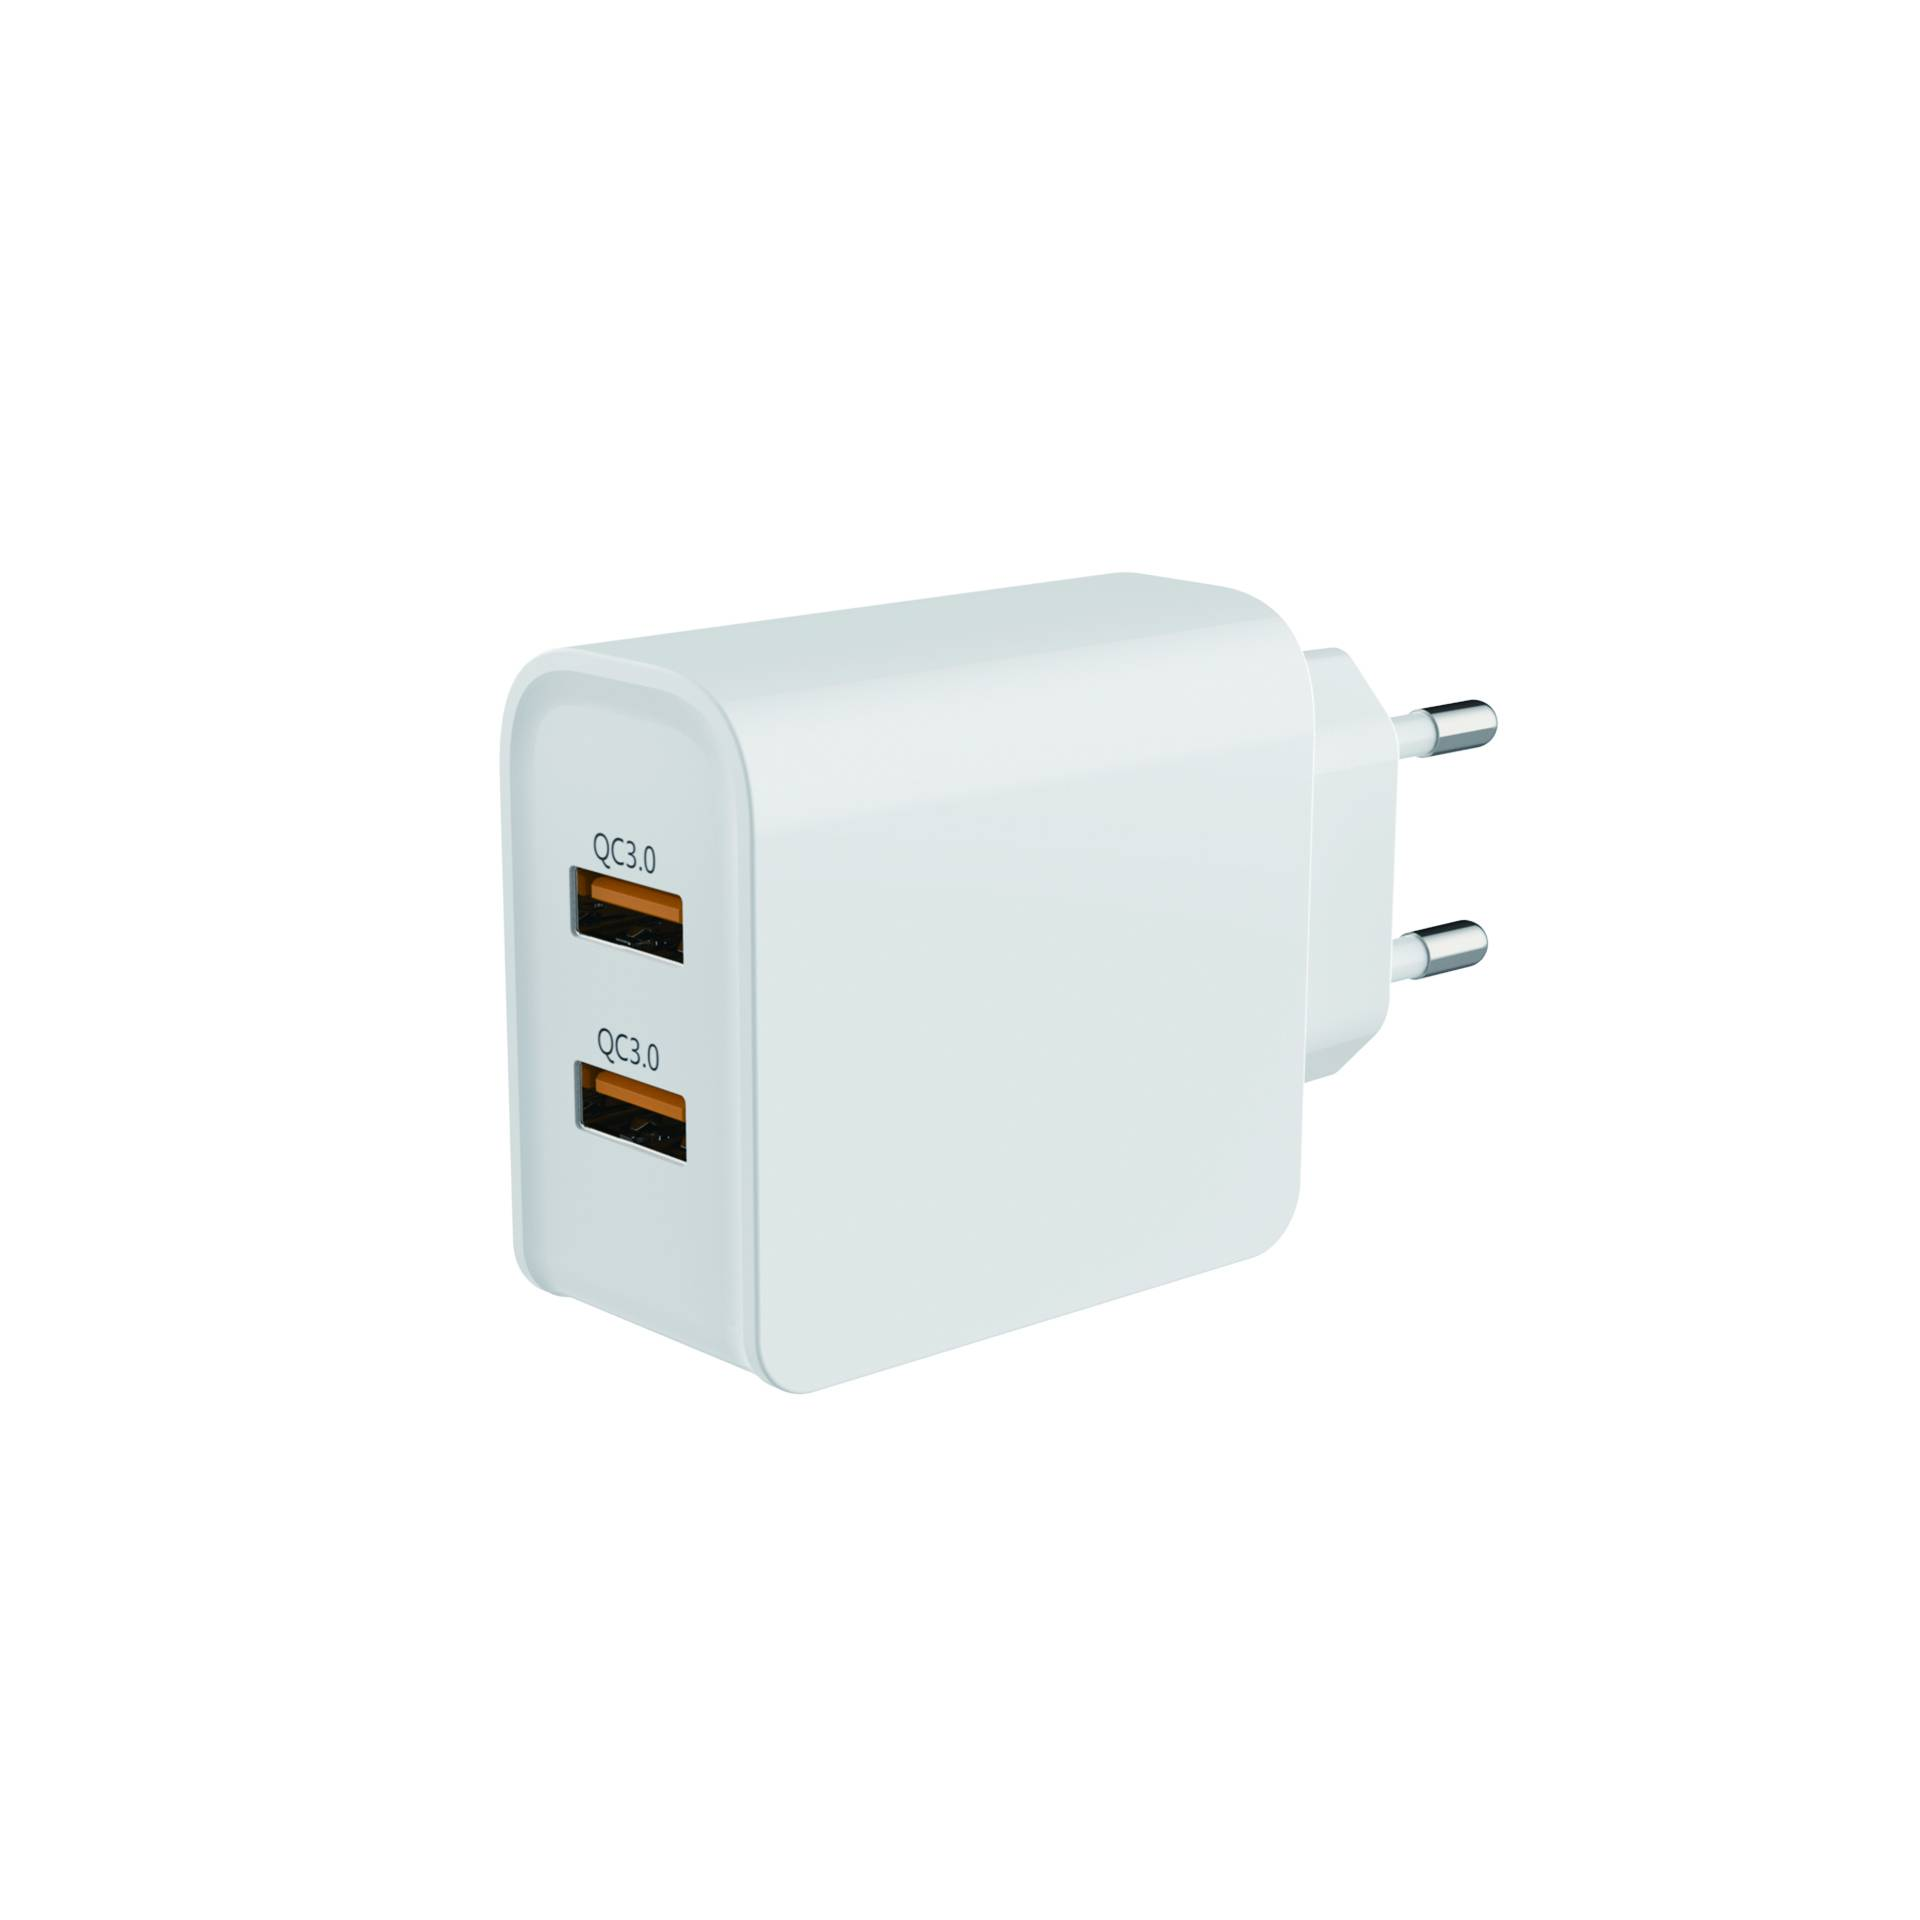 Dual USB 18W QC3.0 Travel Charger for Mobile Phone